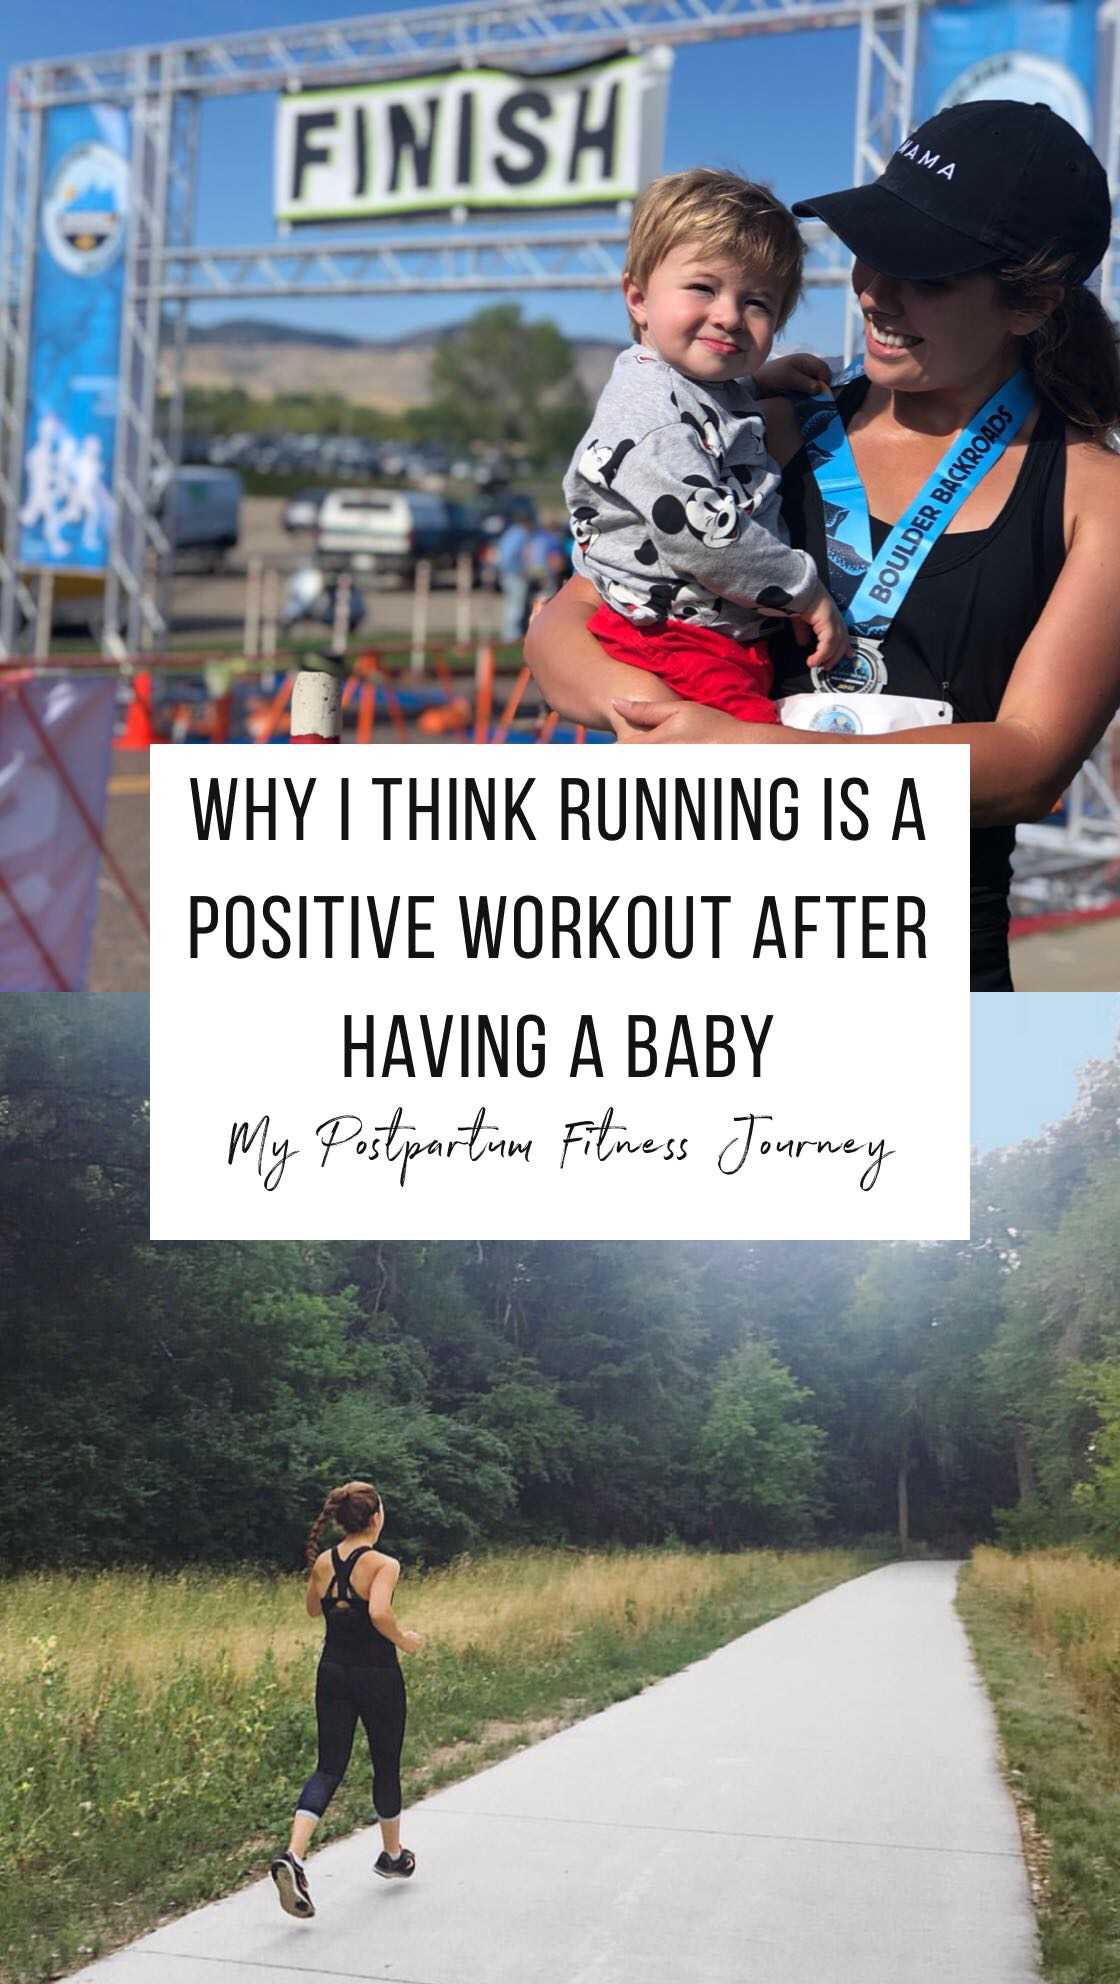 postpartum fitness journey why running is a positive thing